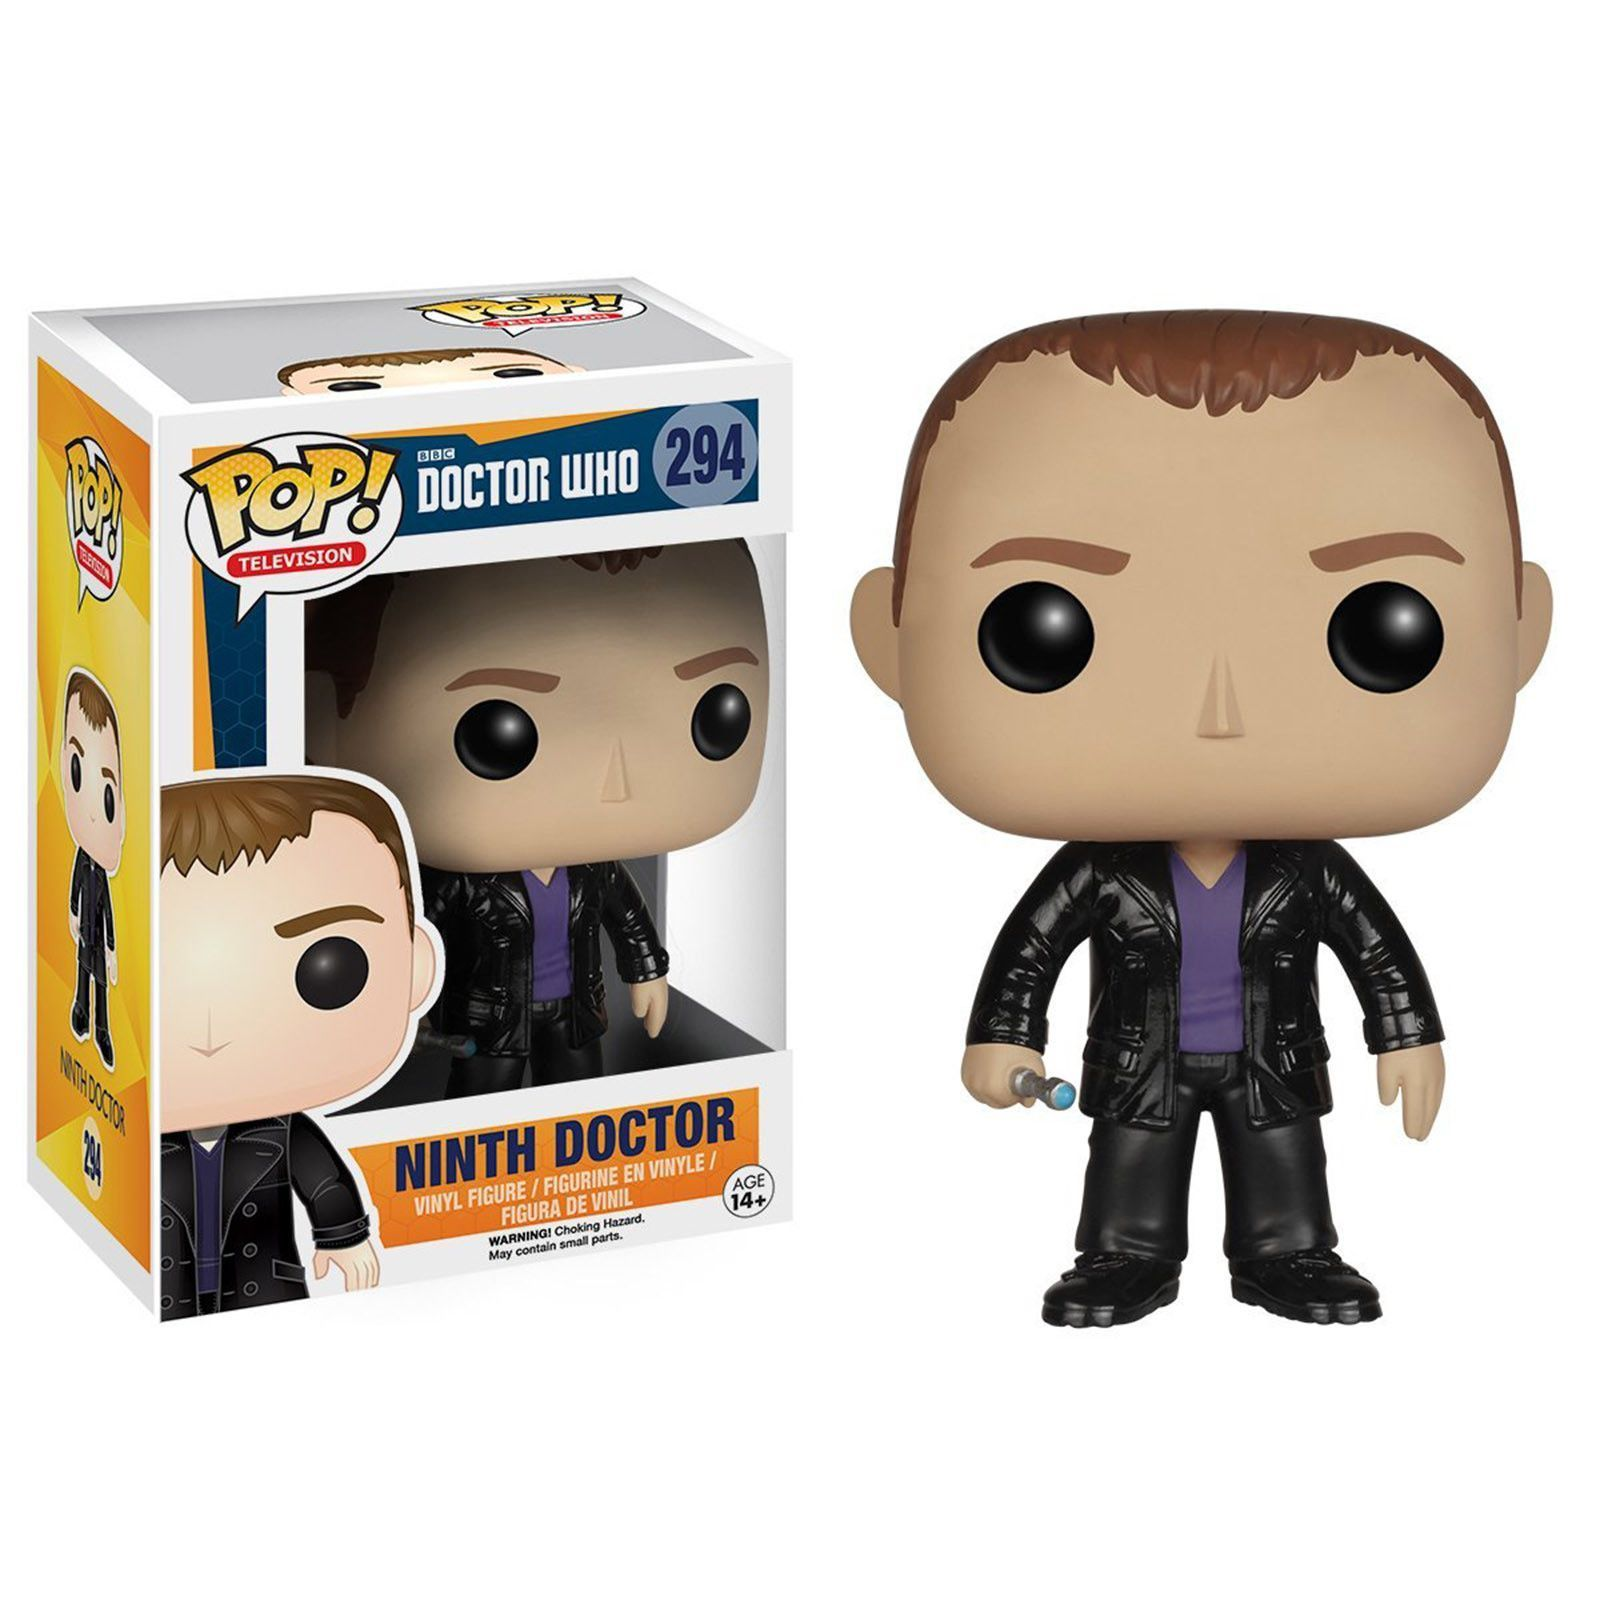 Funko Doctor Who Pop Ninth Doctor Vinyl Figure Pop Vinyl Figures Vinyl Figures Ninth Doctor